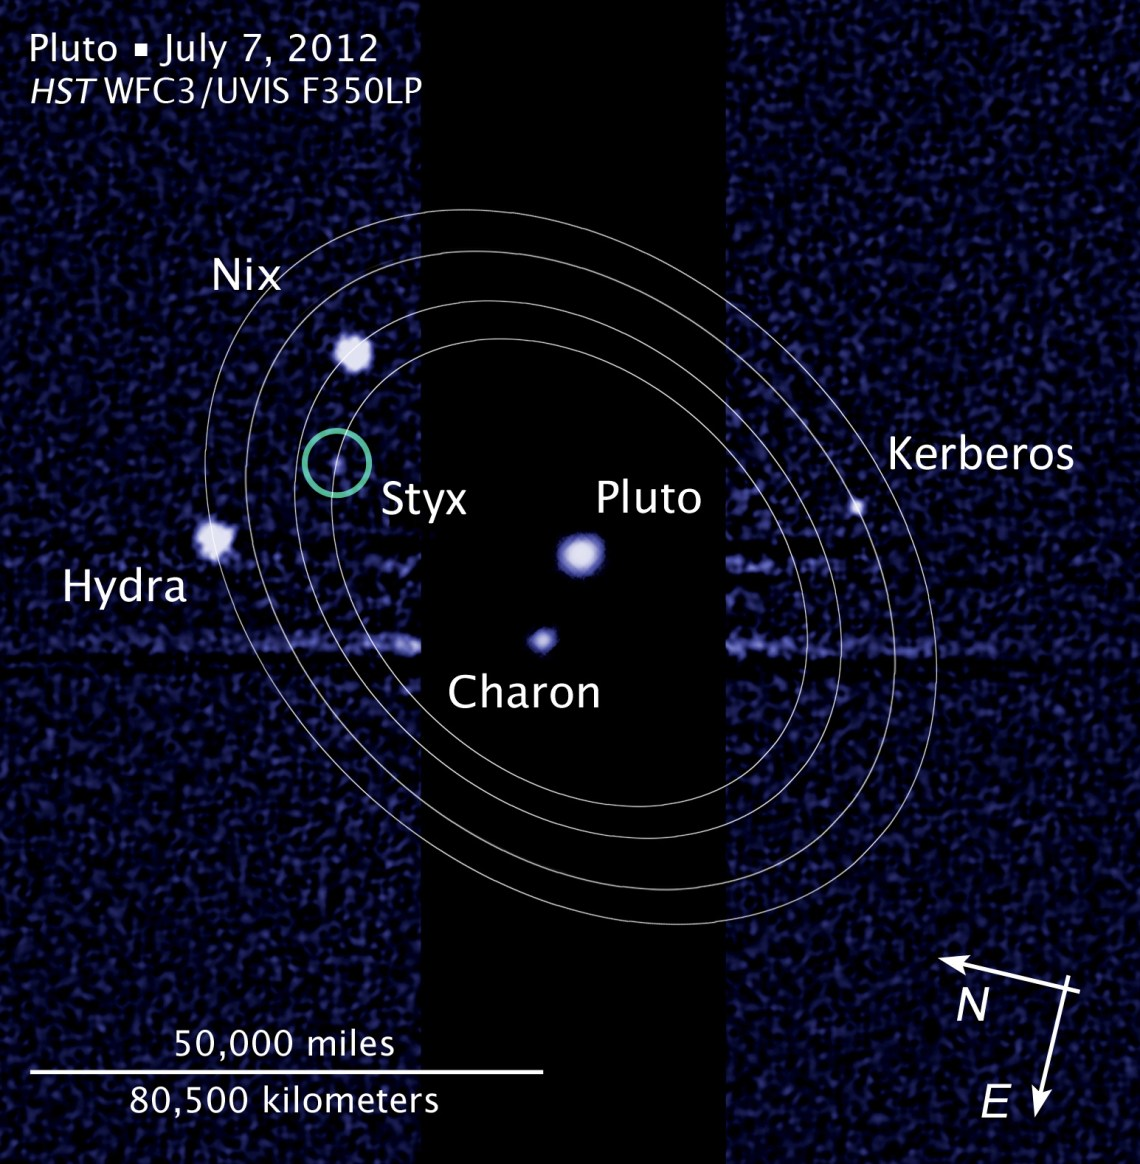 Figure 5: Discovery image of Pluto's tiny moon Styx in 2012, overlaid with orbits of the satellite system, which gave cause for concern to the Pluto Encounter Planning (PEP) Team. Credit: NASA/ESA/L. Frattare (STScI)